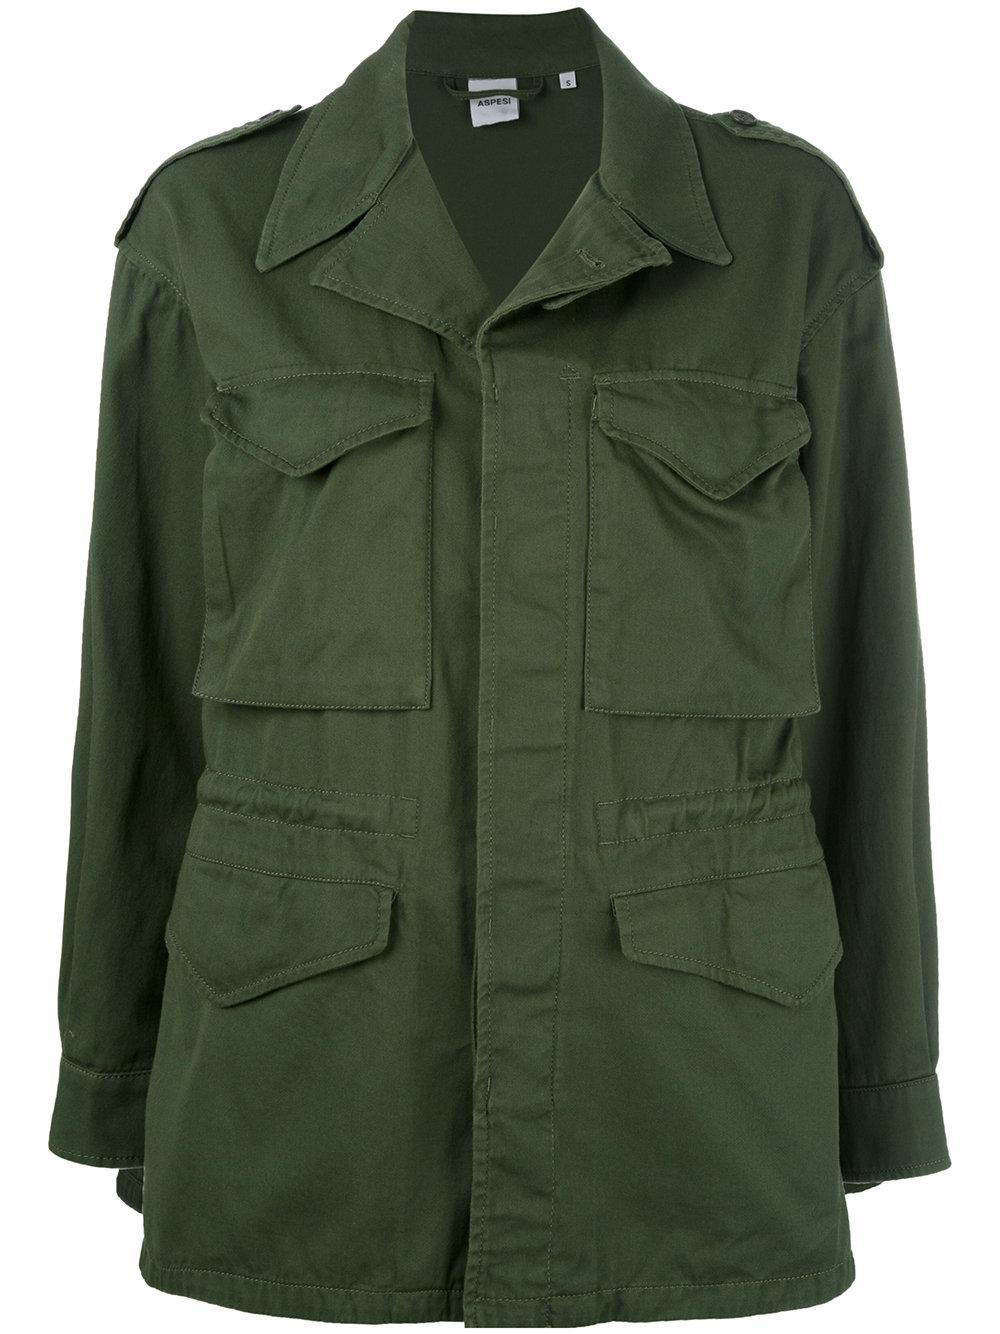 Find green cargo jacket at Macy's Macy's Presents: The Edit - A curated mix of fashion and inspiration Check It Out Free Shipping with $49 purchase + Free Store Pickup.